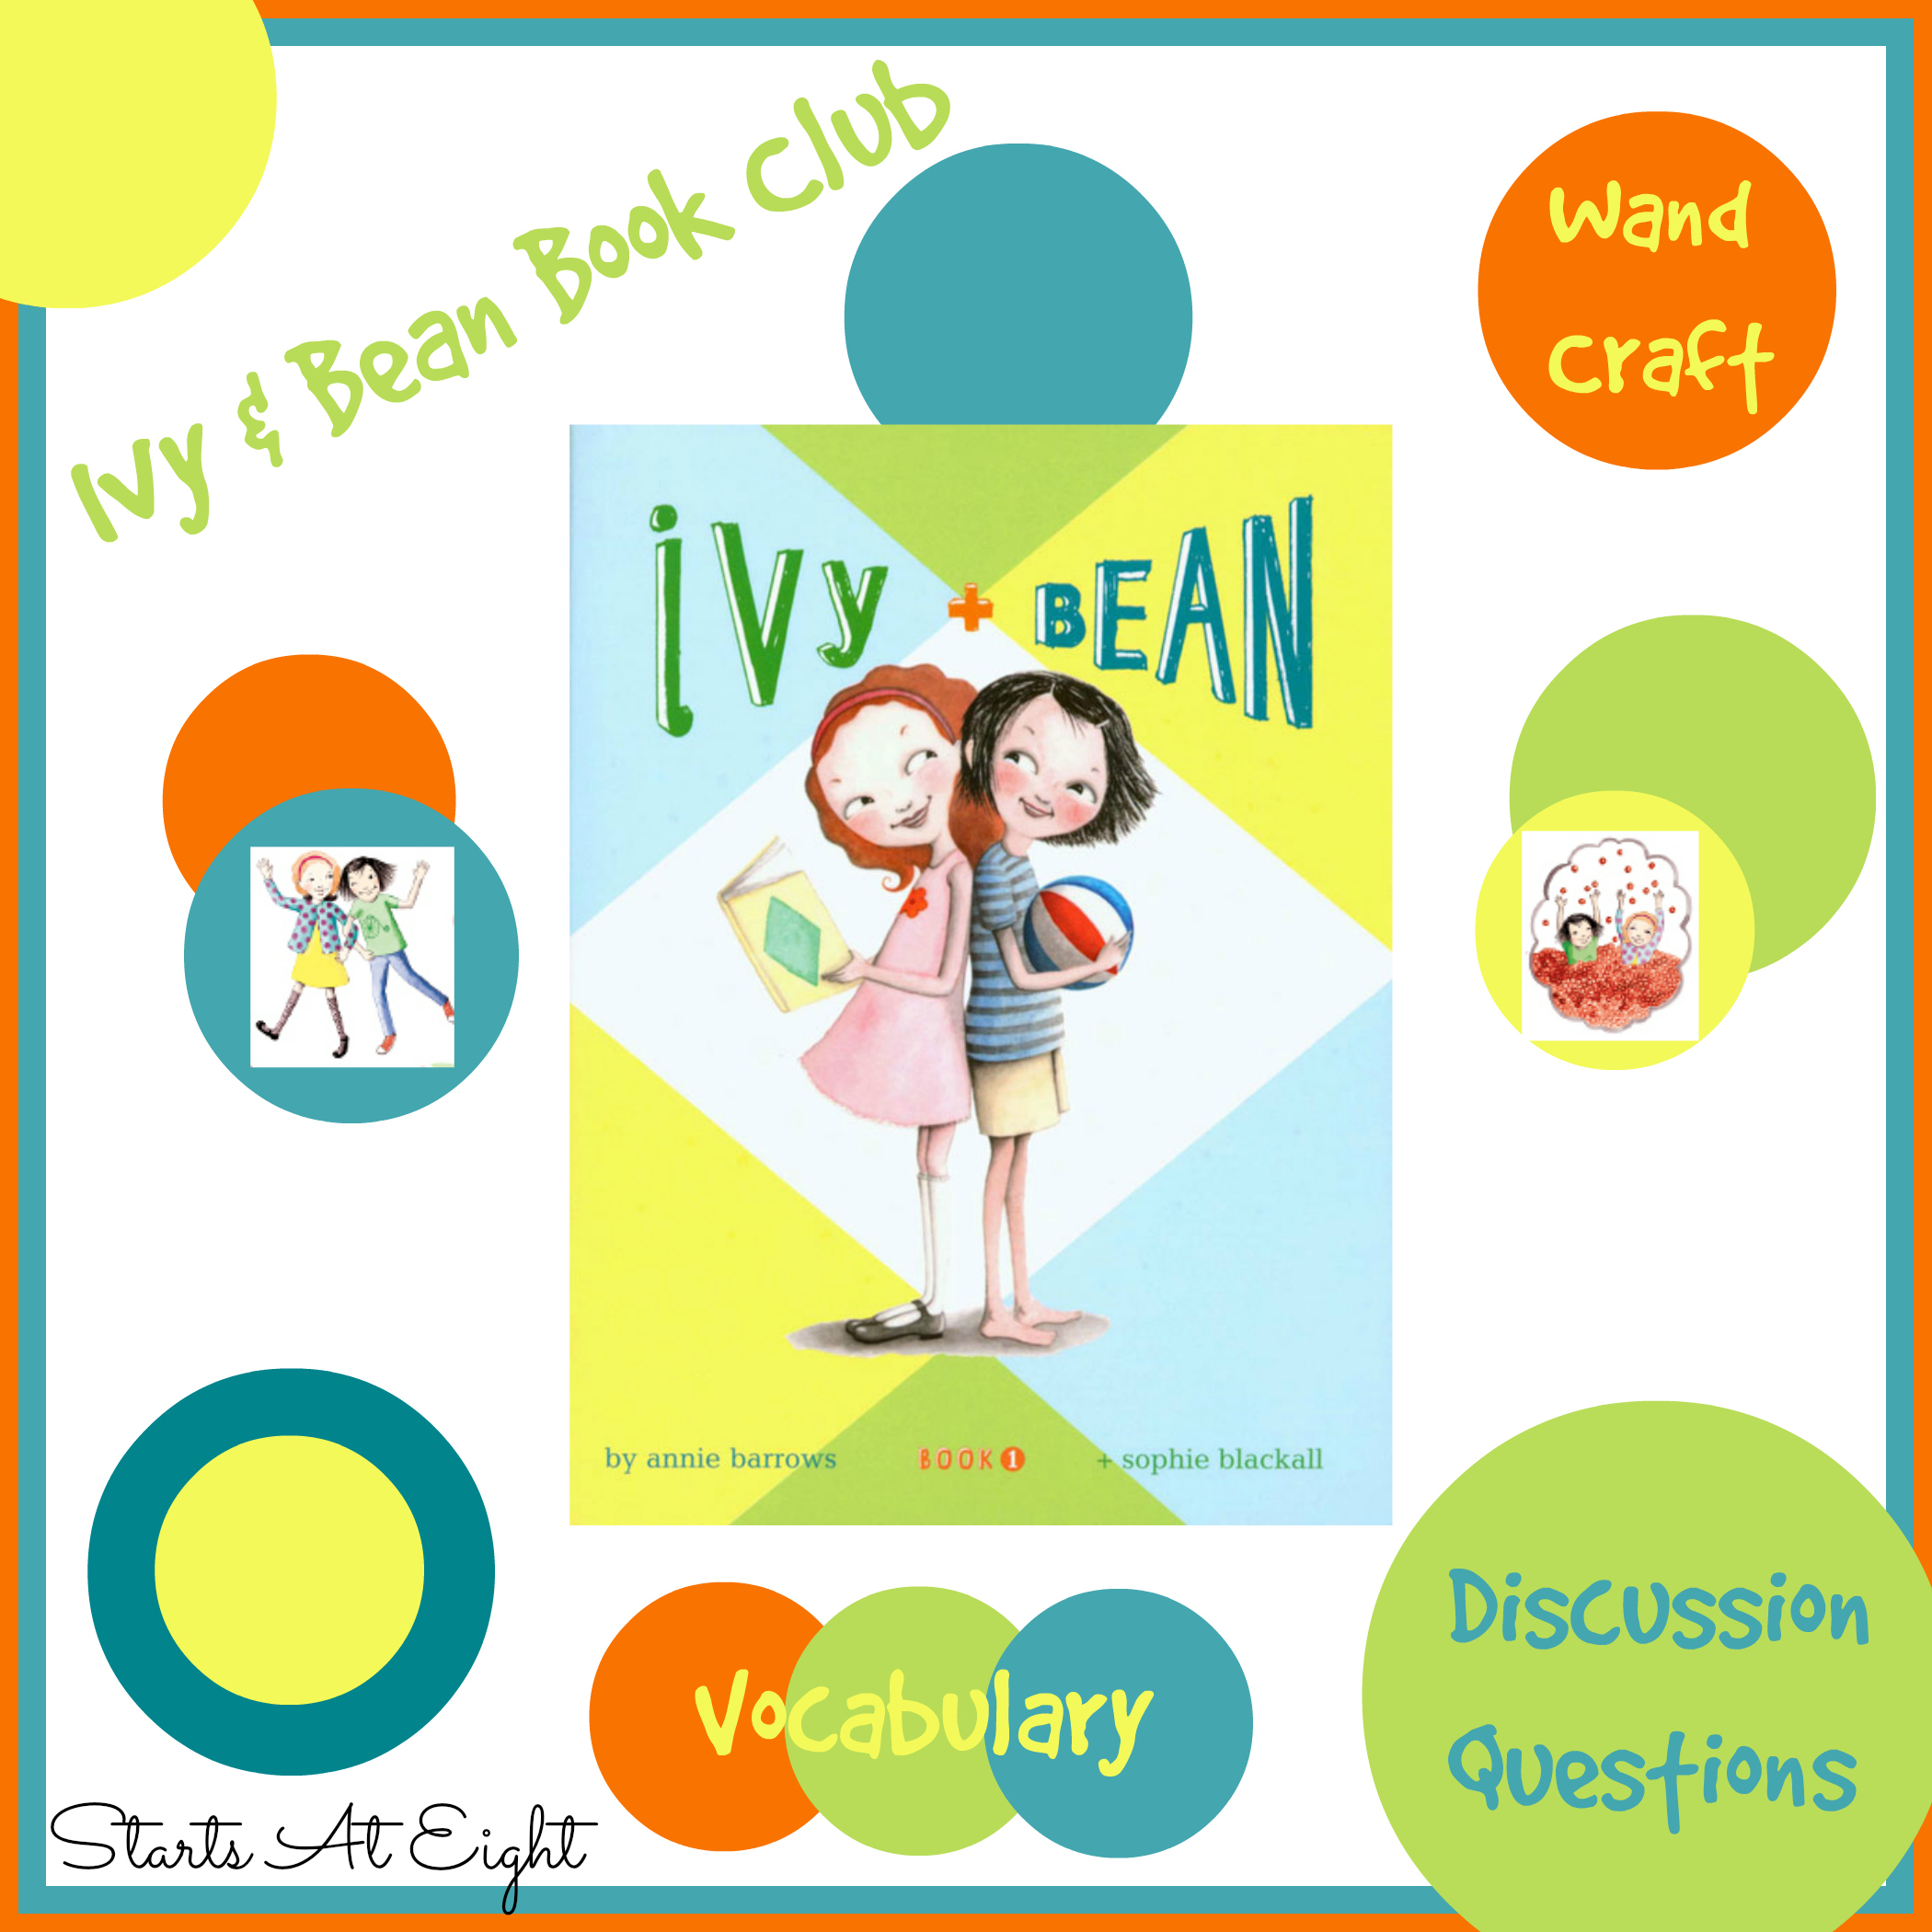 picture regarding Printable Book Club Questions named Ivy Bean E-book Club: Dialogue Inquiries, Craft